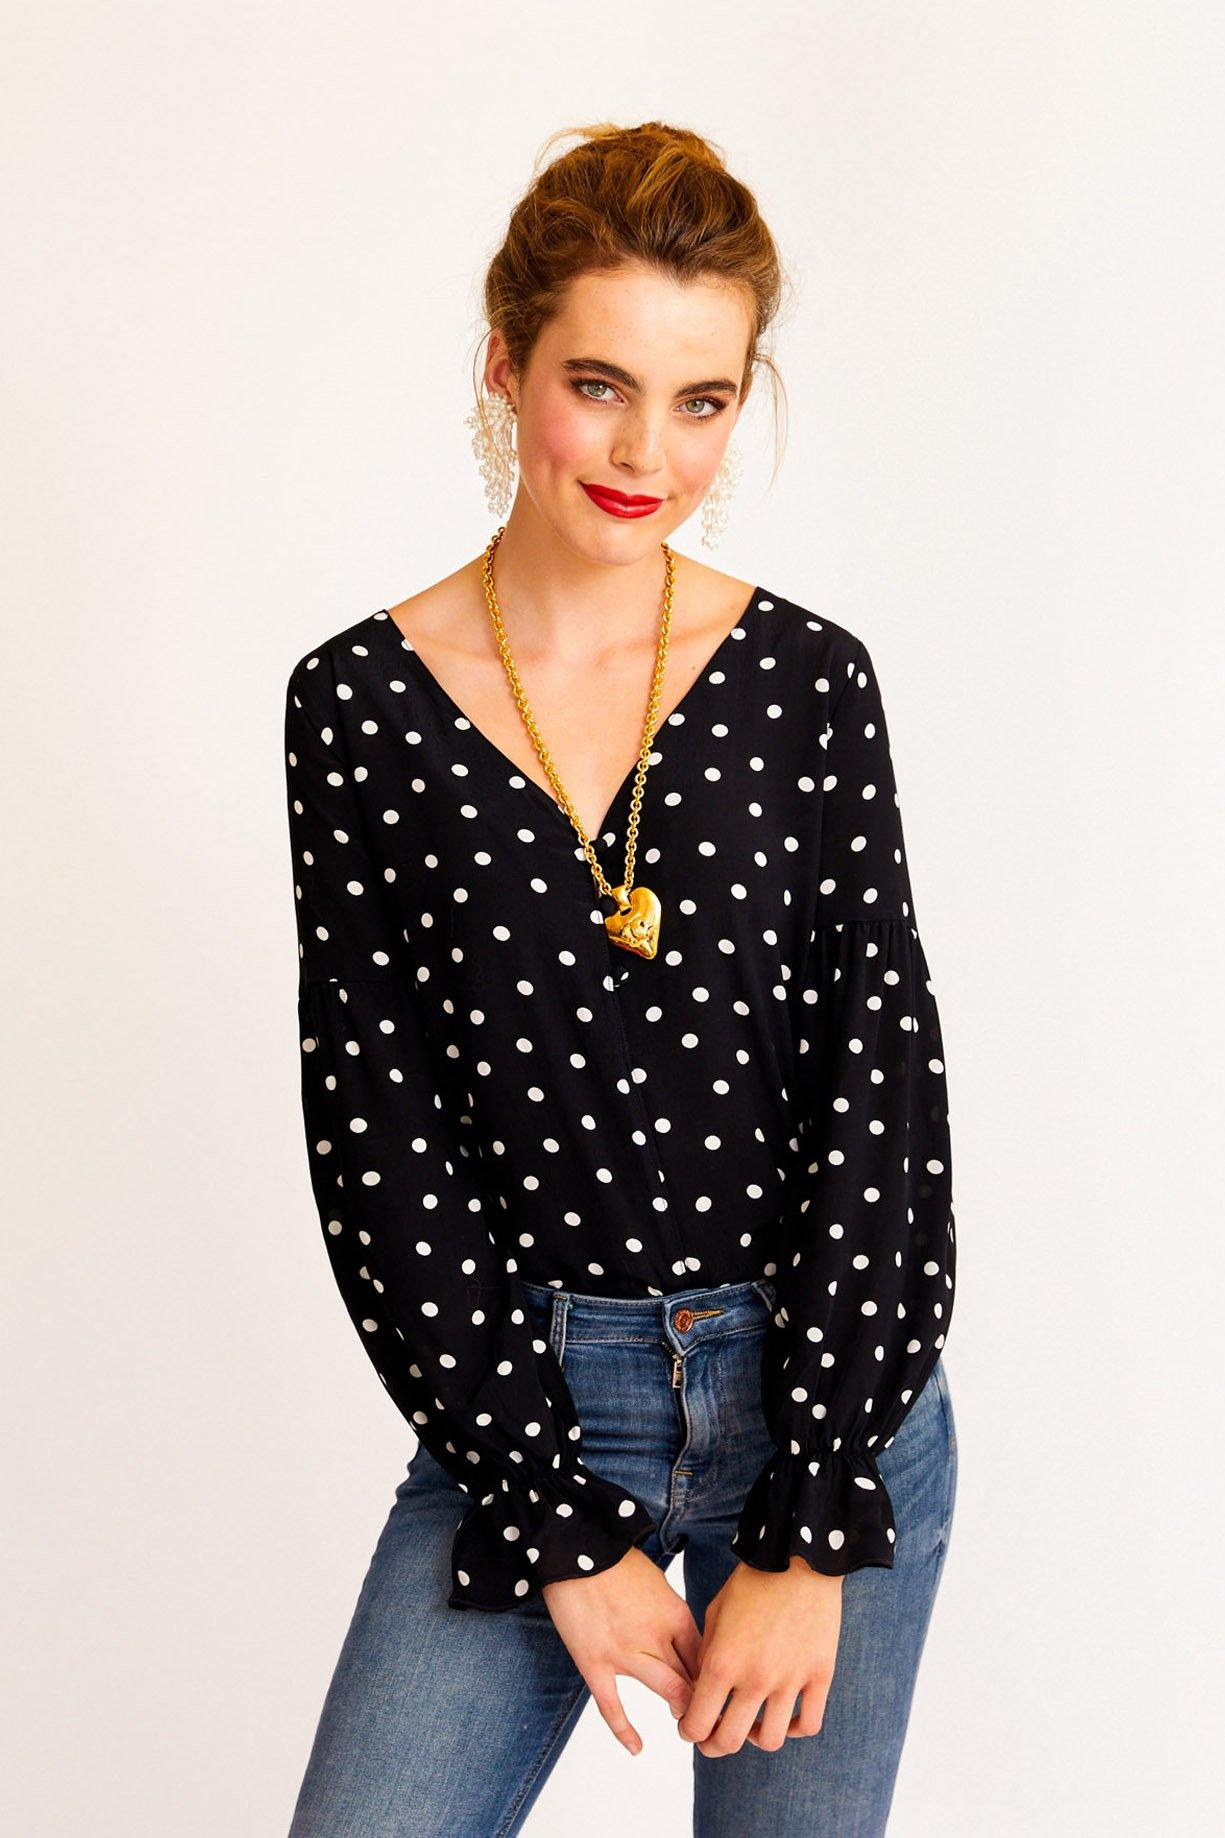 Sanctuary Alma Polka Dot Top from Sweet & Spark.